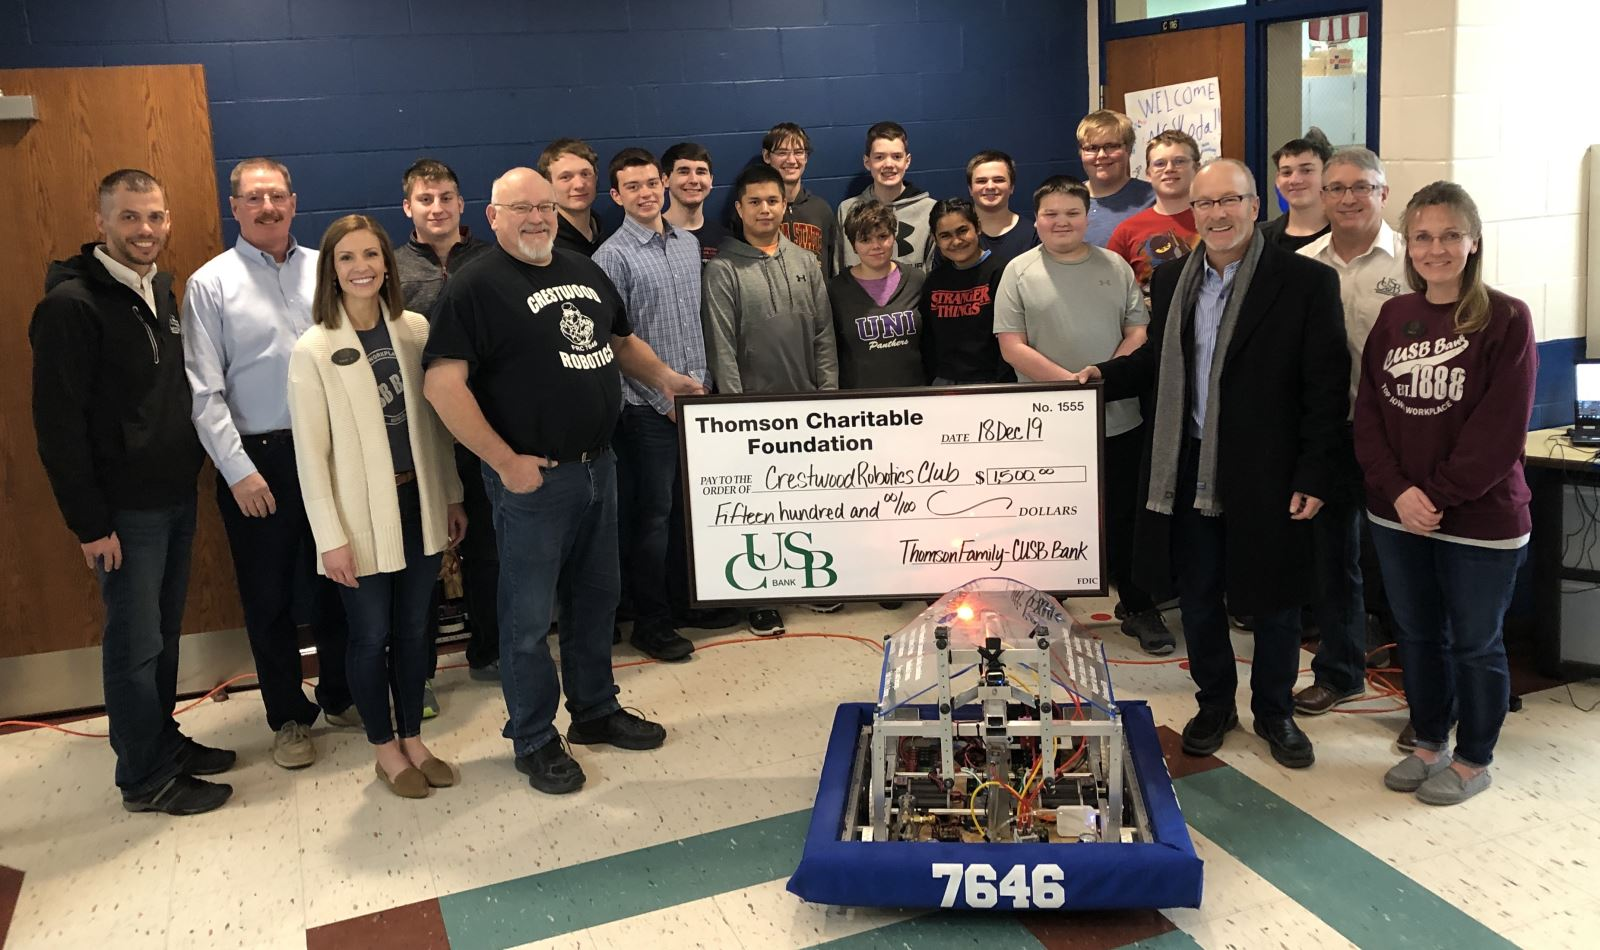 CUSB donations $1,500 to Crestwood Robotics Club